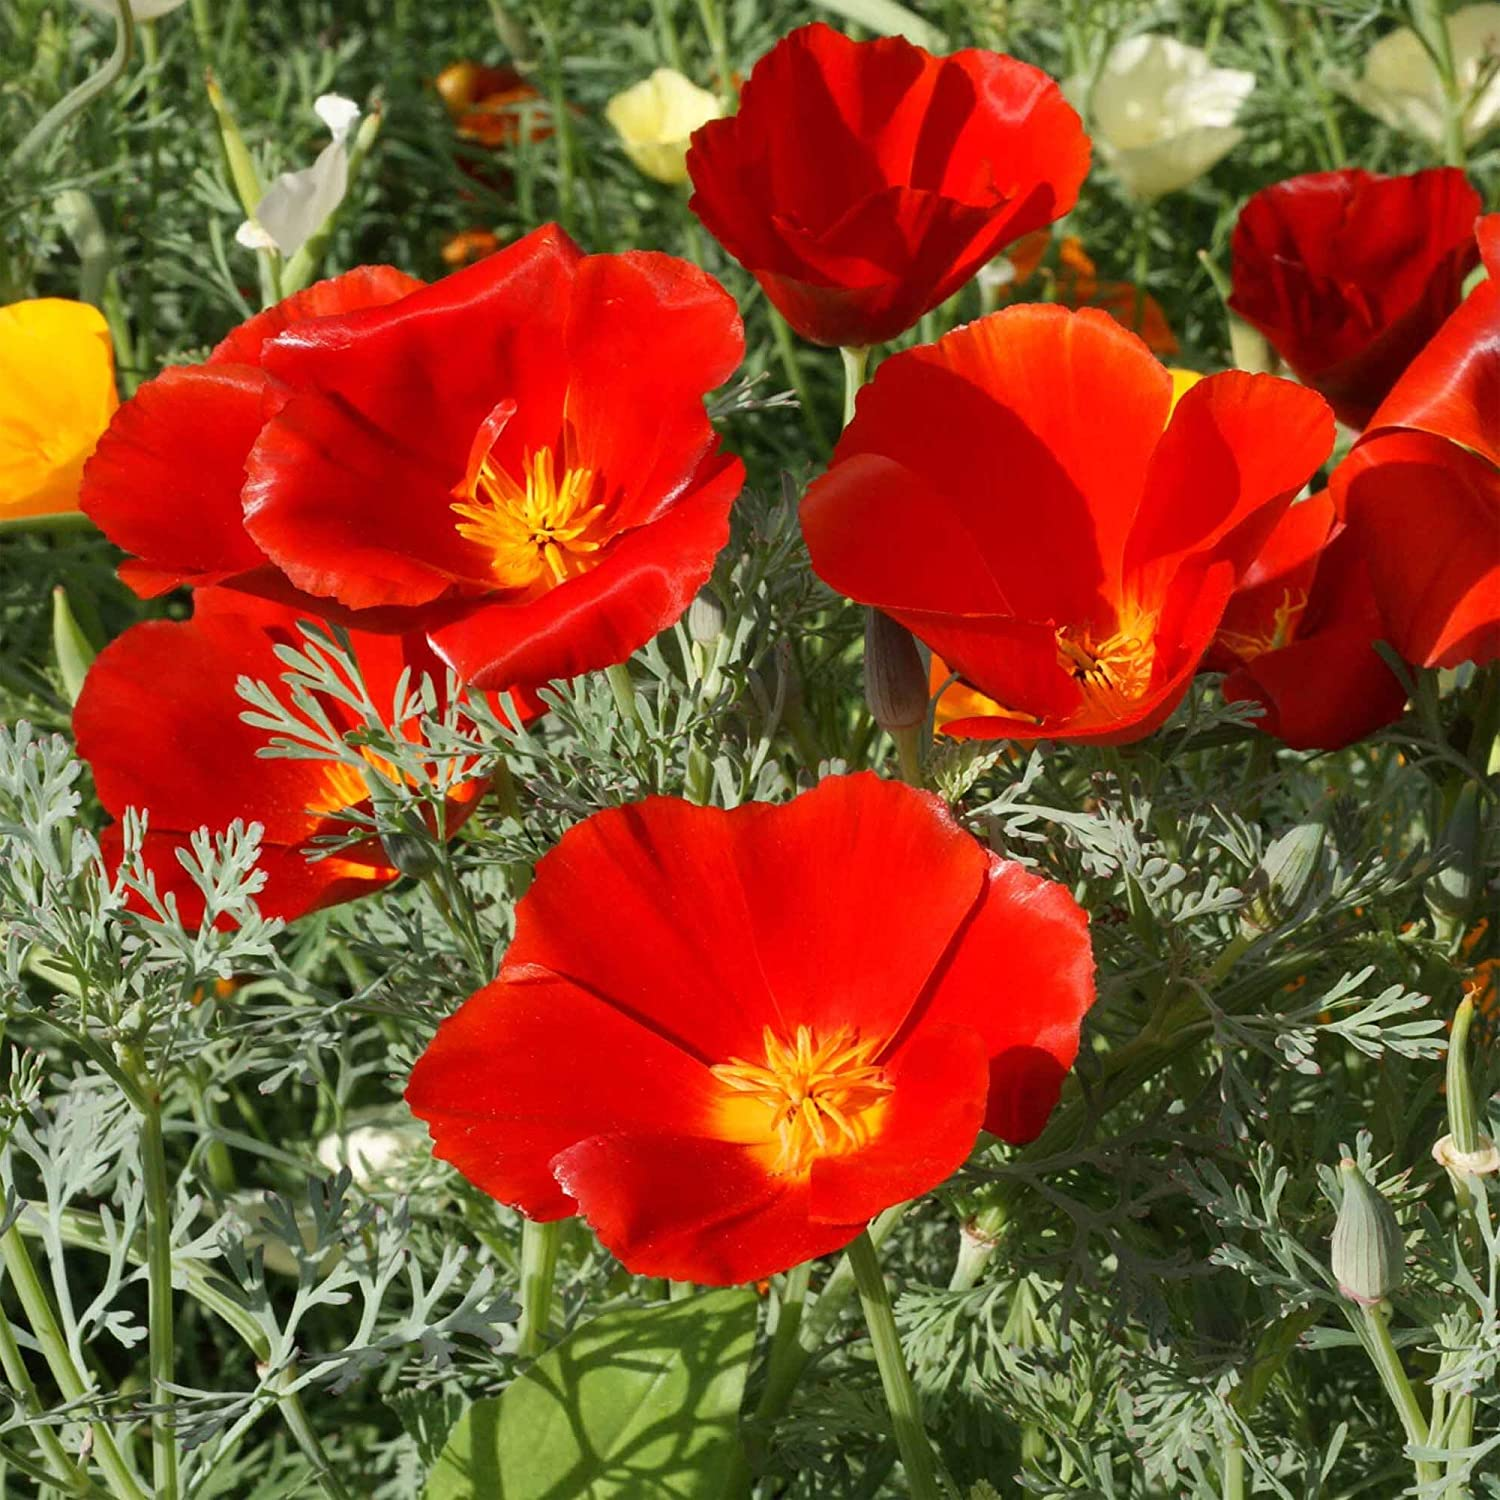 Red Chief Poppy Seeds, 2000 Heirloom Seeds Per Packet, Non GMO Seeds